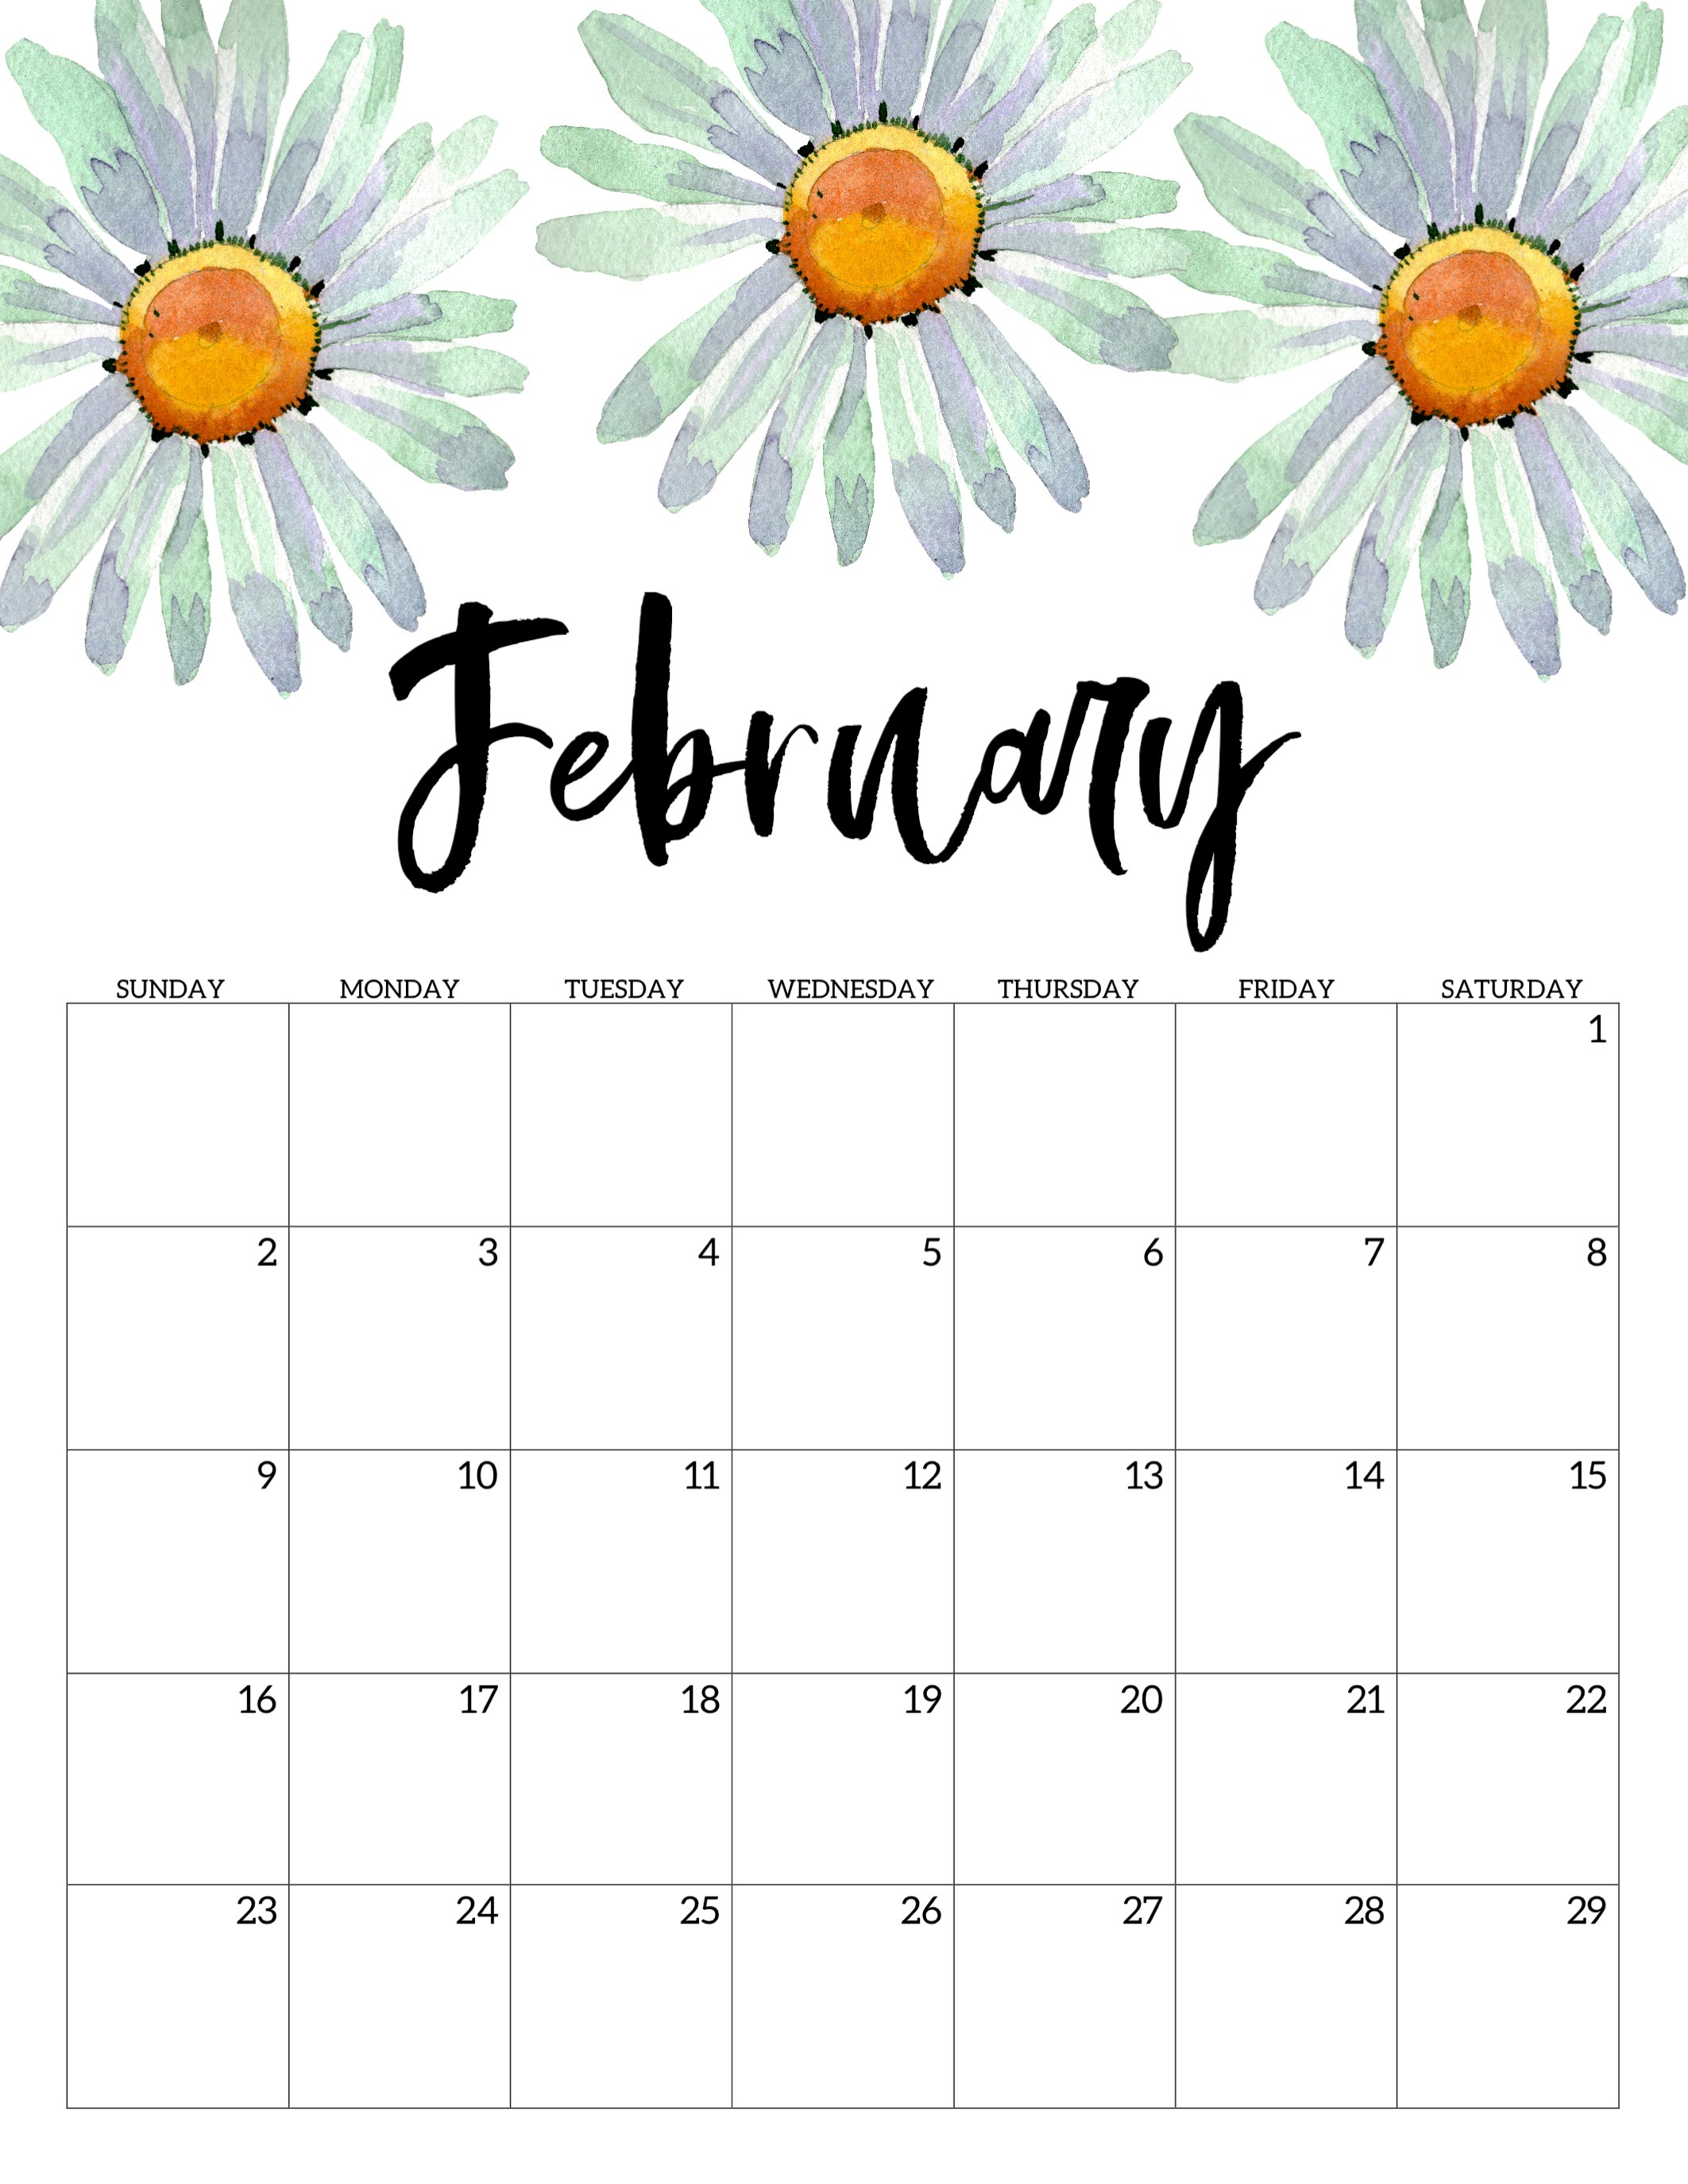 2020 Free Printable Calendar - Floral - Paper Trail Design pertaining to 2019 2020 Girly Calendar Printable